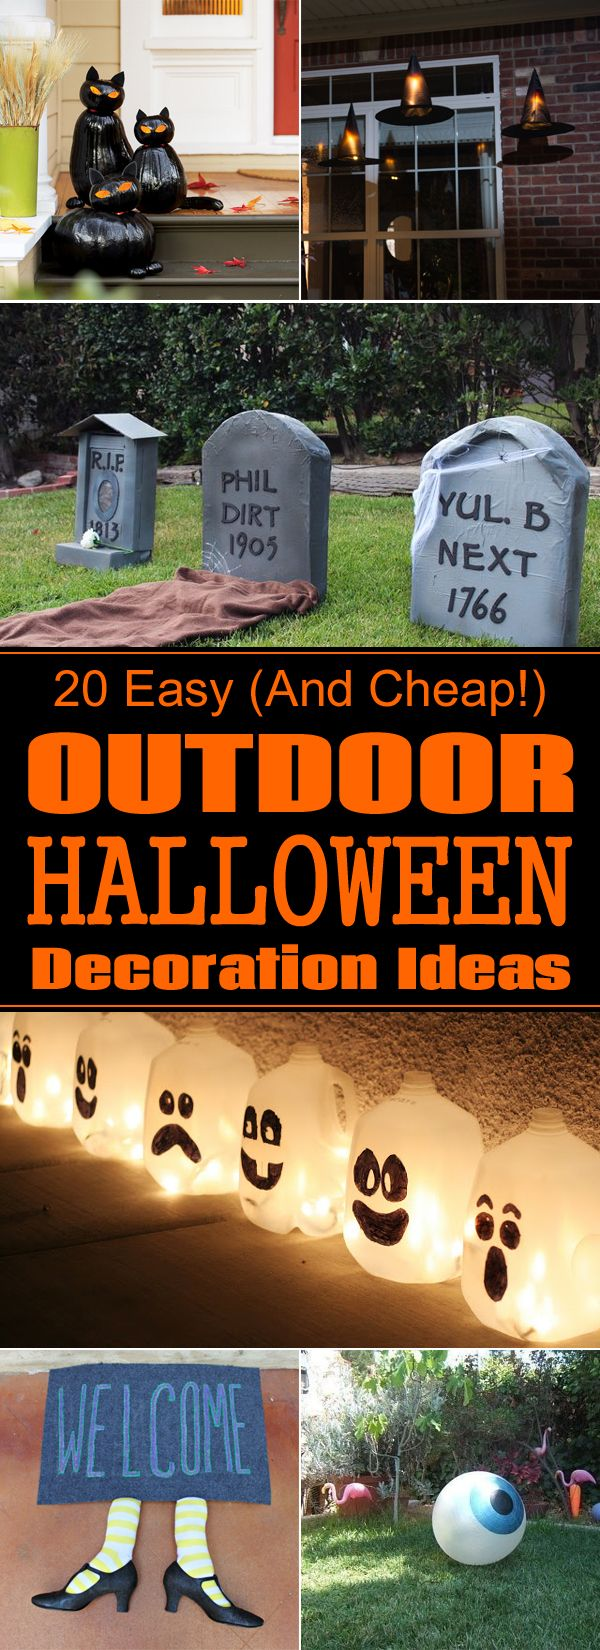 20 Easy And Cheap Diy Outdoor Halloween Decoration Ideas Halloween Decorations Diy Outdoor Halloween Diy Outdoor Outdoor Halloween